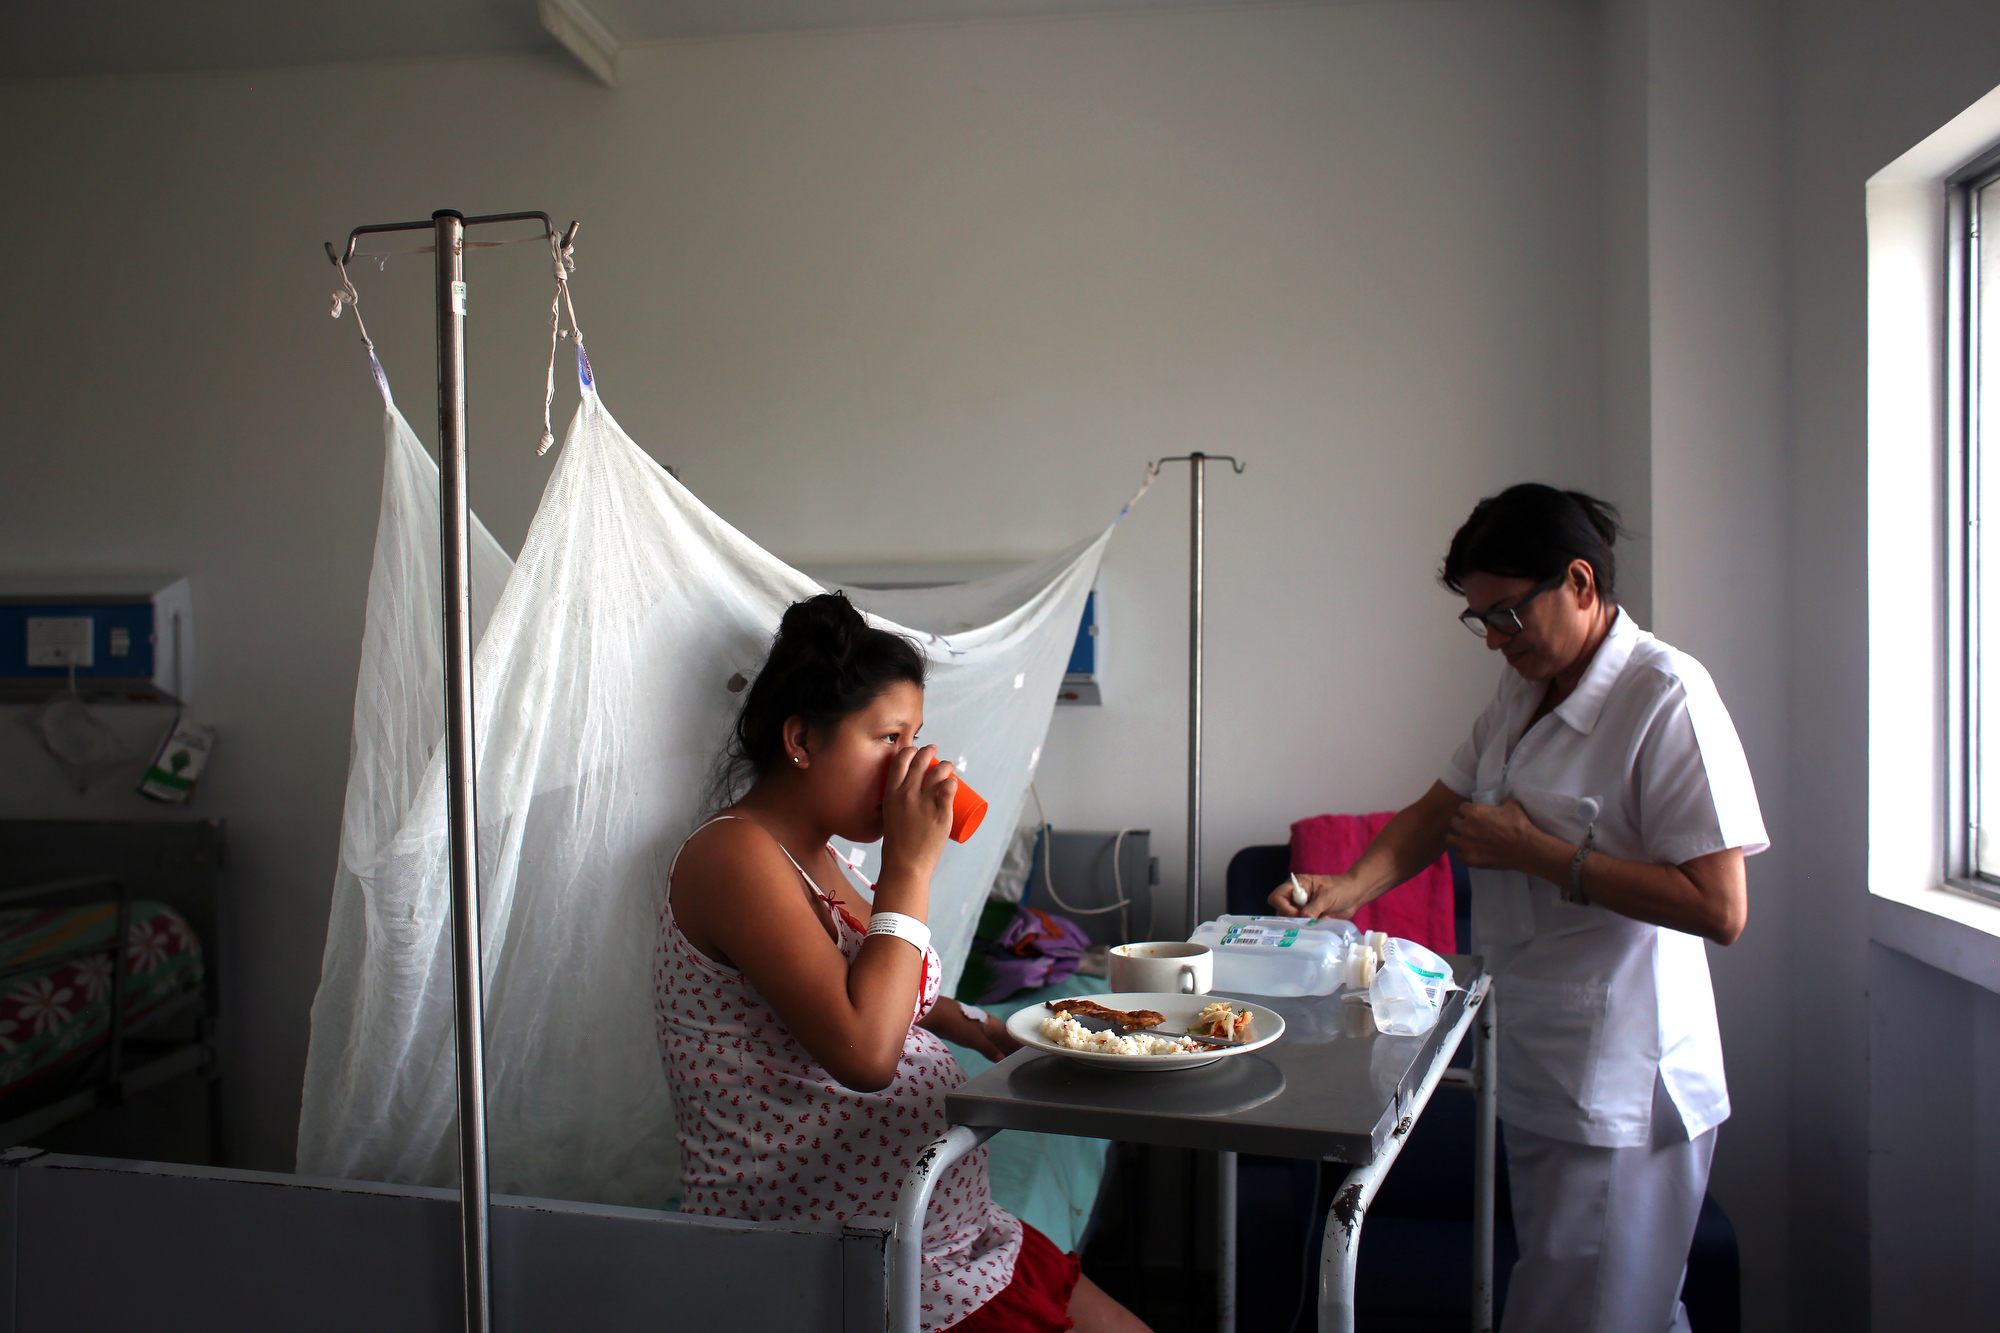 Pregnant woman Paola Andrea Escalante, 17, infected by the Zika virus eats lunch while being attended at the Hospital Universitario Erasmo Meoz in Cúcuta, Colombia, on February 4, 2016. Doctors say Escalante's baby is not infected with the virus.